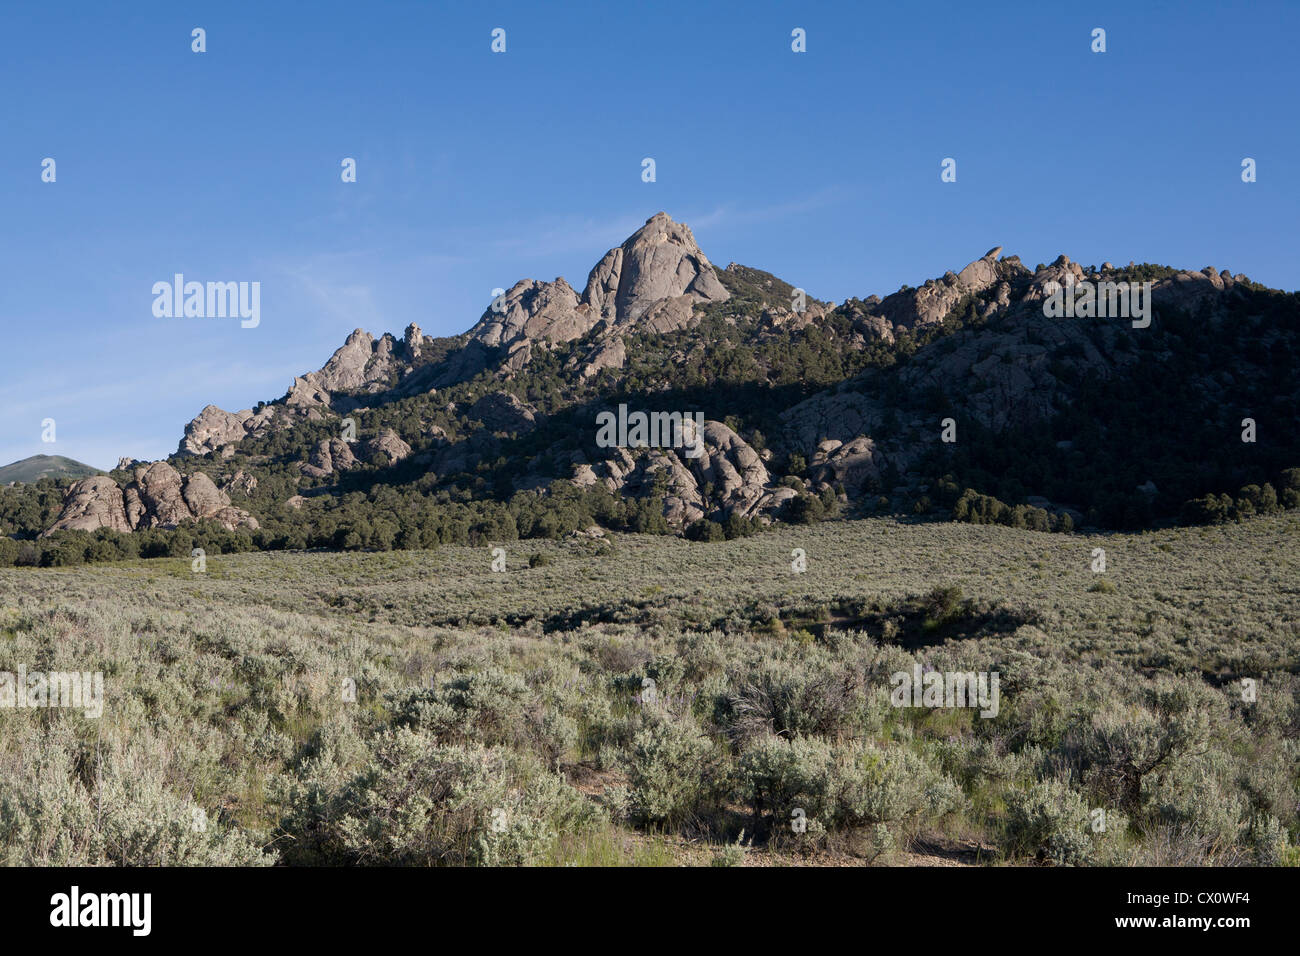 Fanciful rock shapes at City of Rocks National Reserve, Almo, ID. - Stock Image